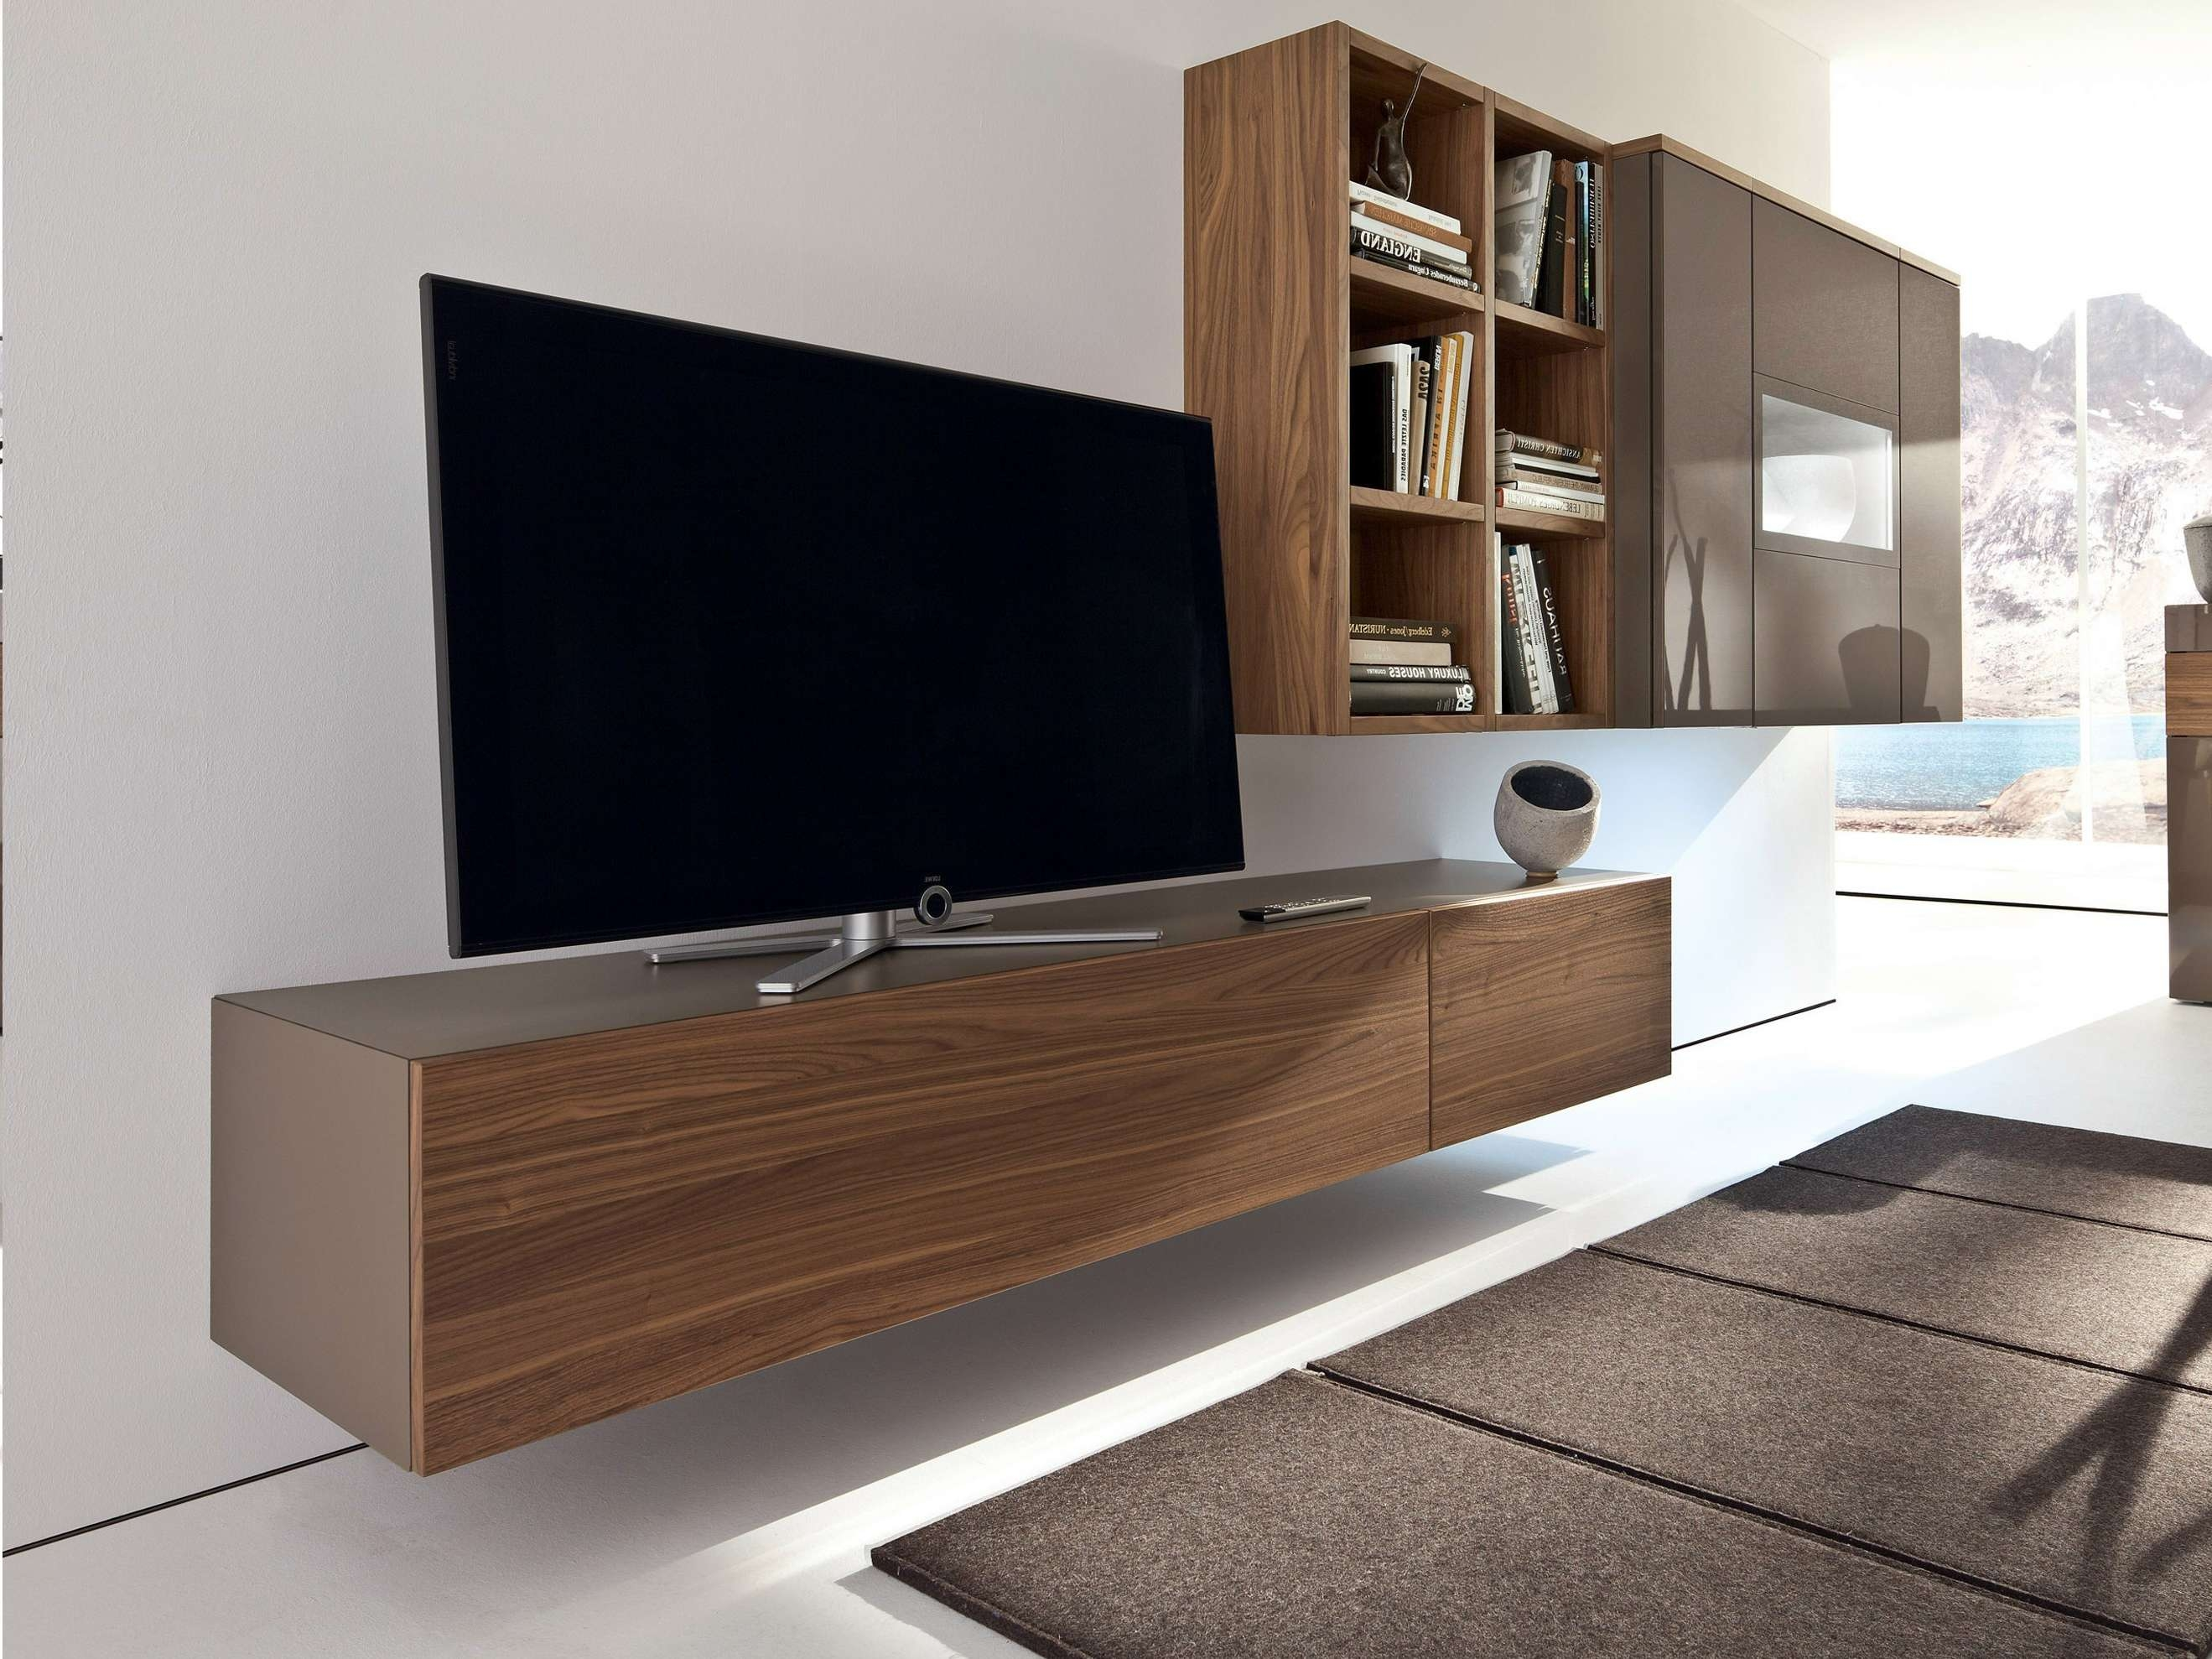 Curved Wall Mount Tv Stand The Curve Espresso Ob Off ~ Idolza Within Wall Mounted Tv Cabinets With Sliding Doors (View 3 of 20)